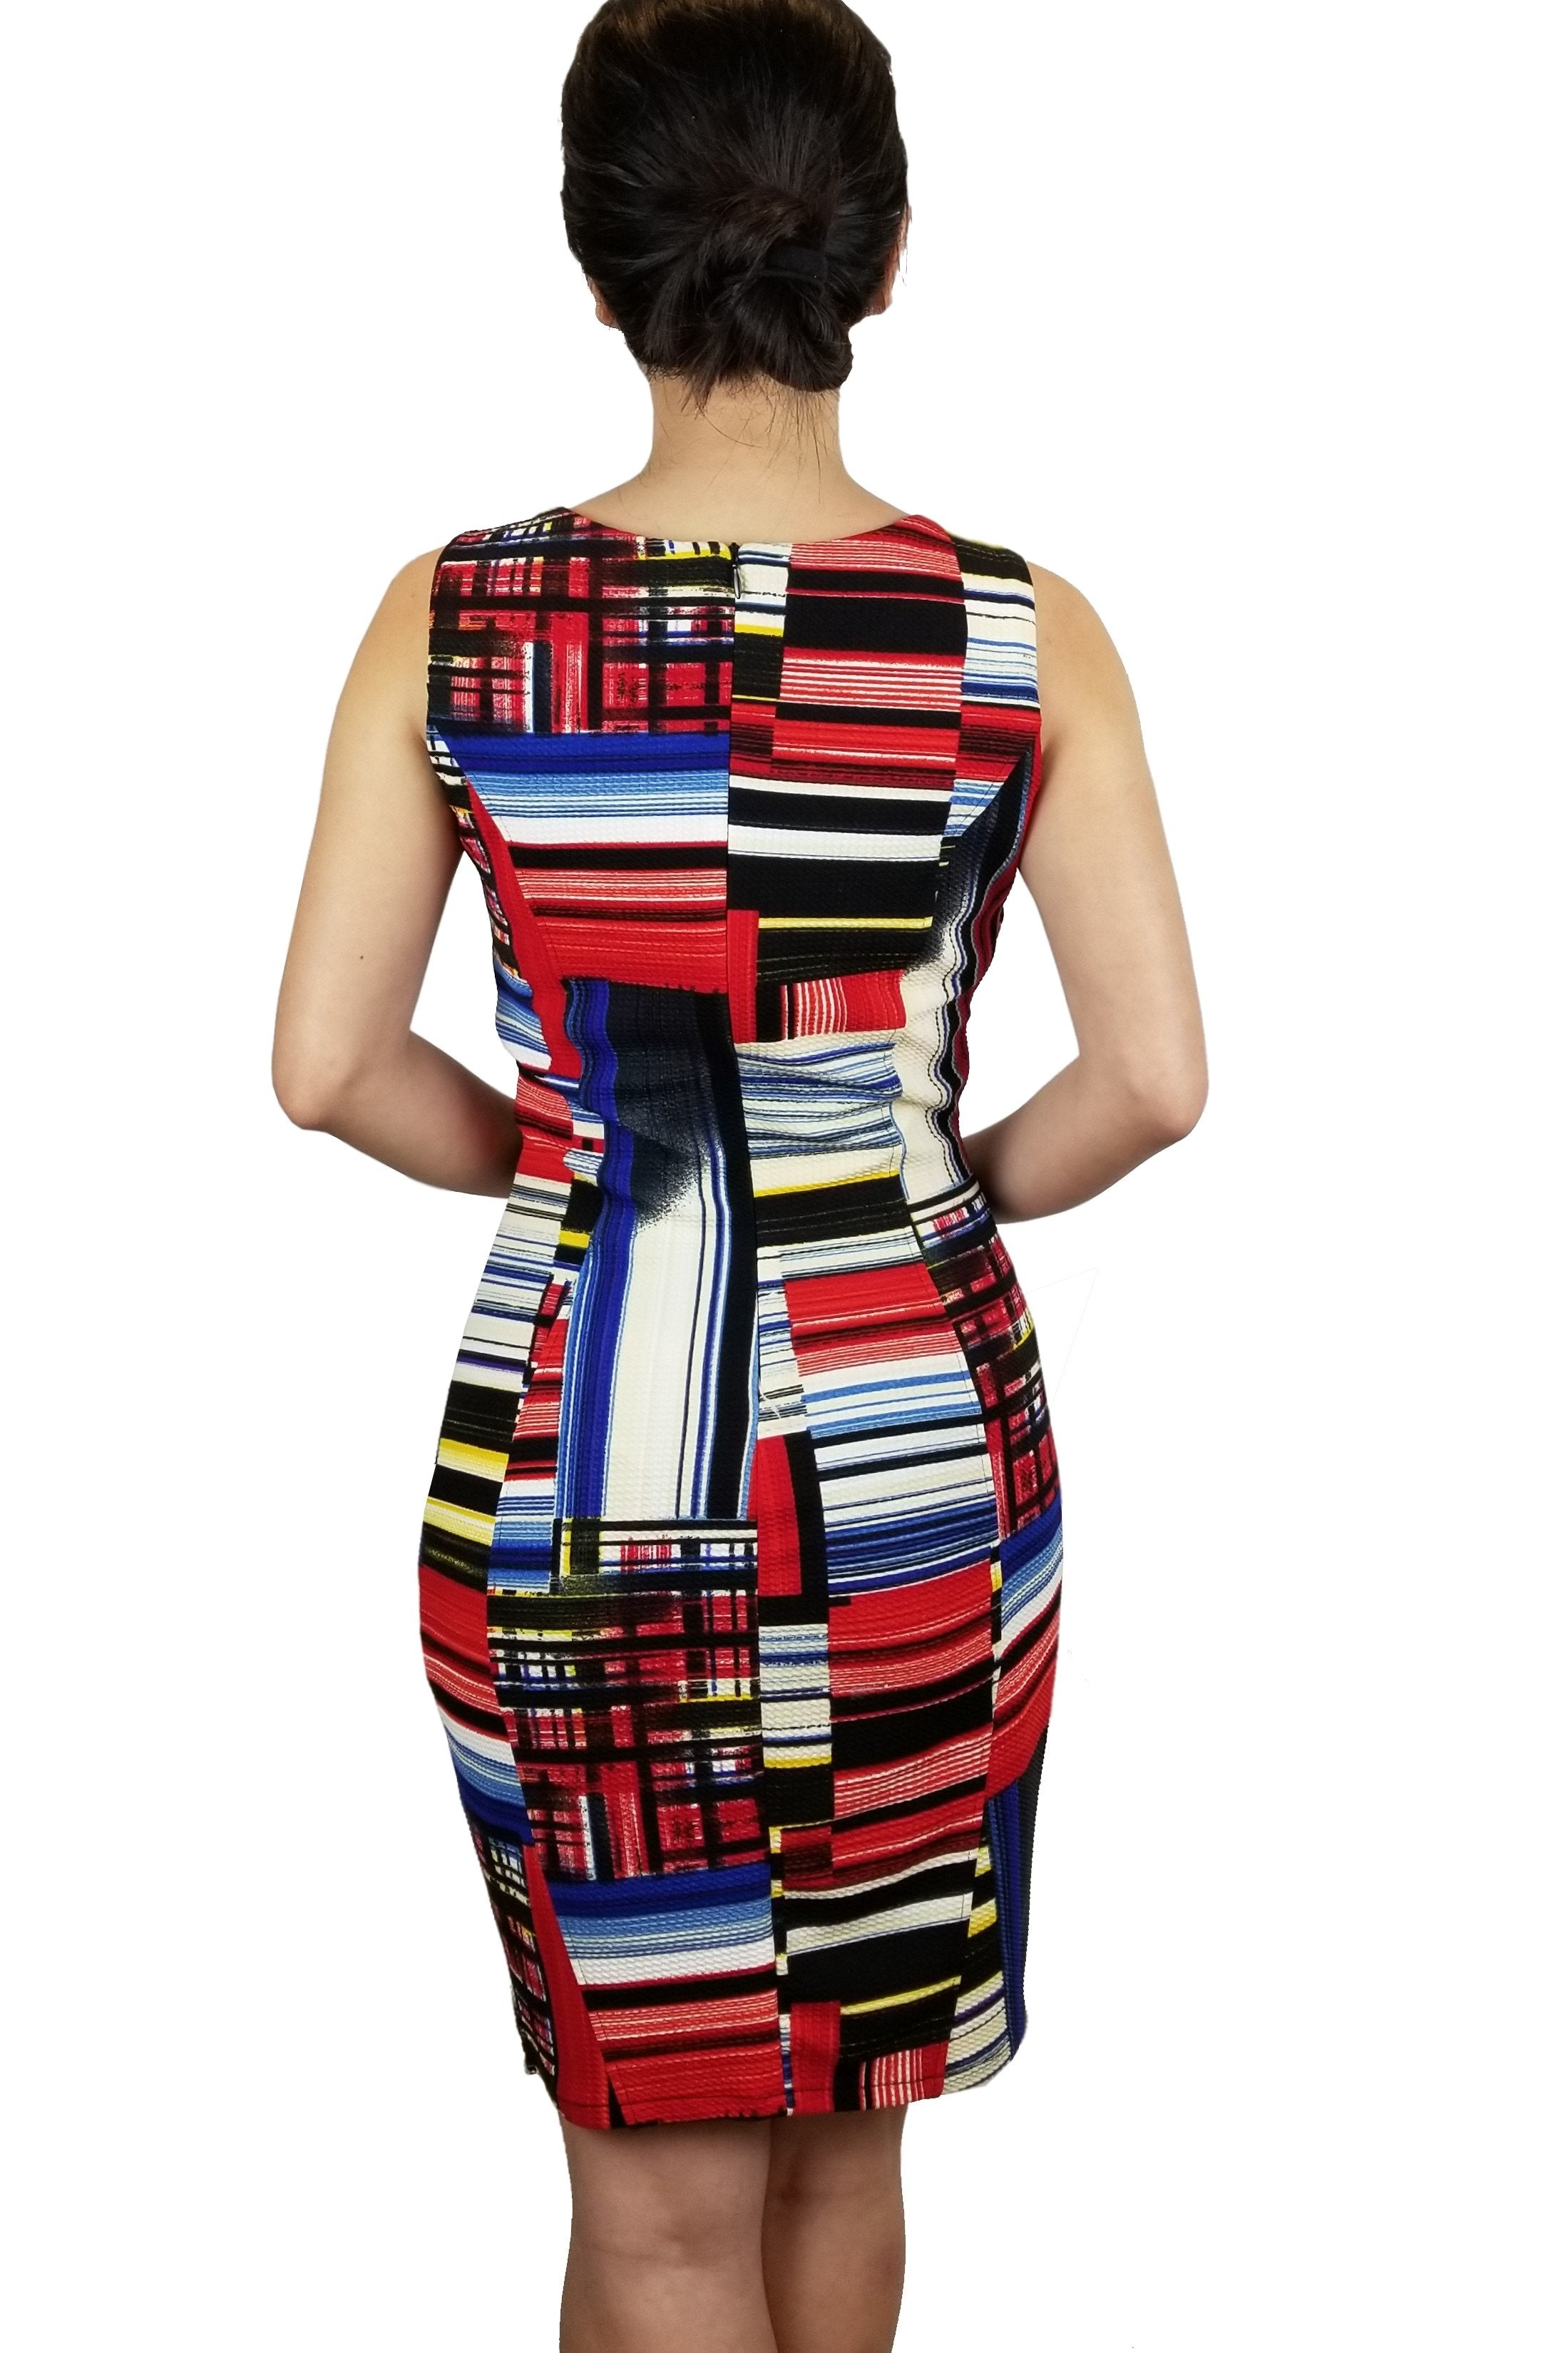 Midi Business Casual Dress, Body-hugging dress with unique design that matches your great taste. Comfortable fabric, Red, Black, Shell Polyester and Elastane. Lining: 100% Polyester, colored dress, multi colored dress with unique design, women's formal dress, women's body hugging dress